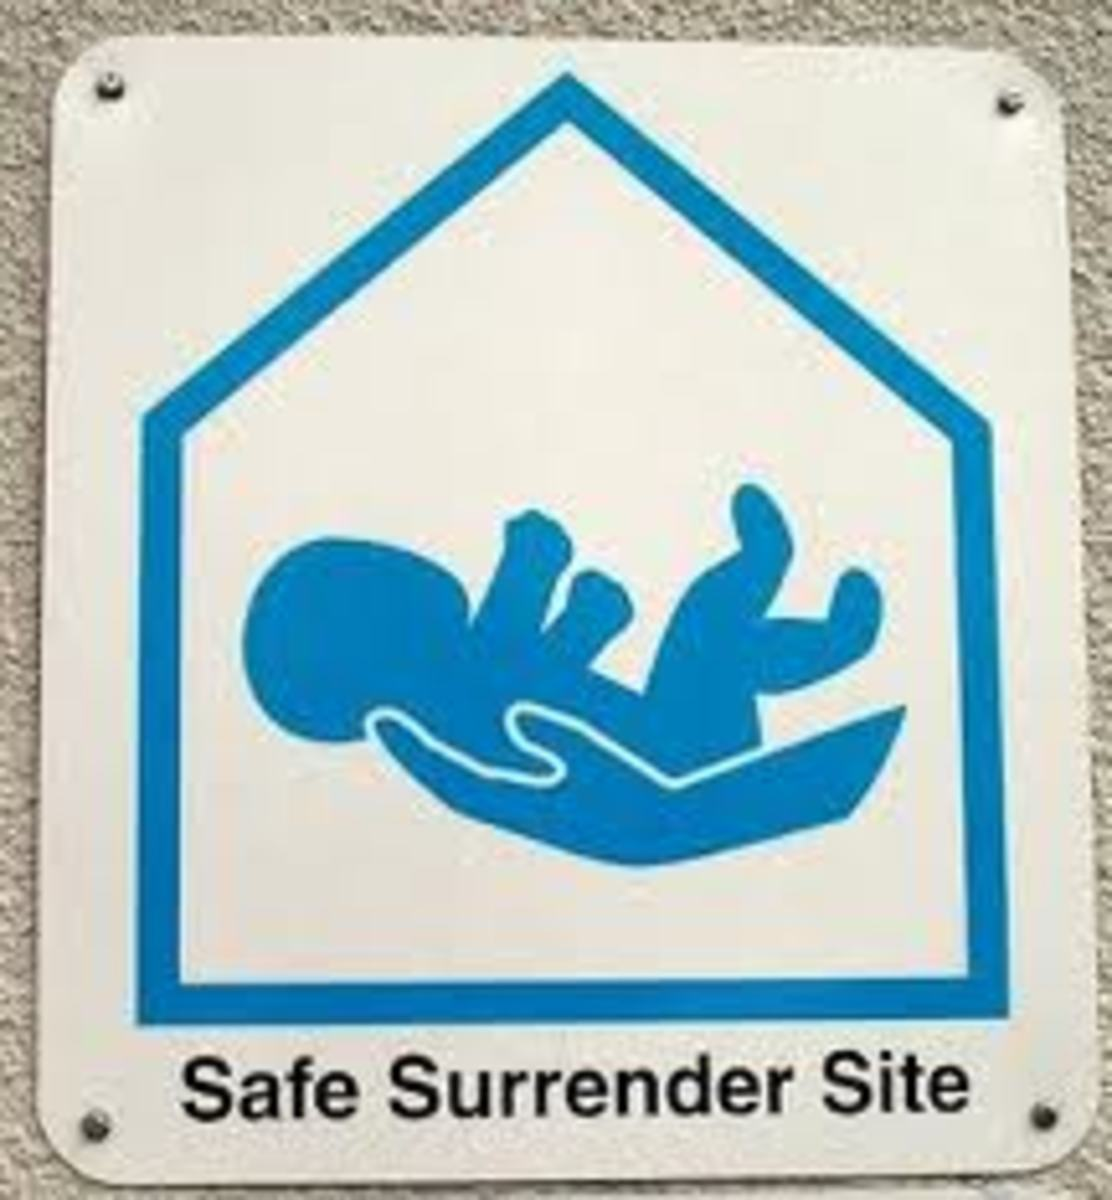 a safe surrender site in the US